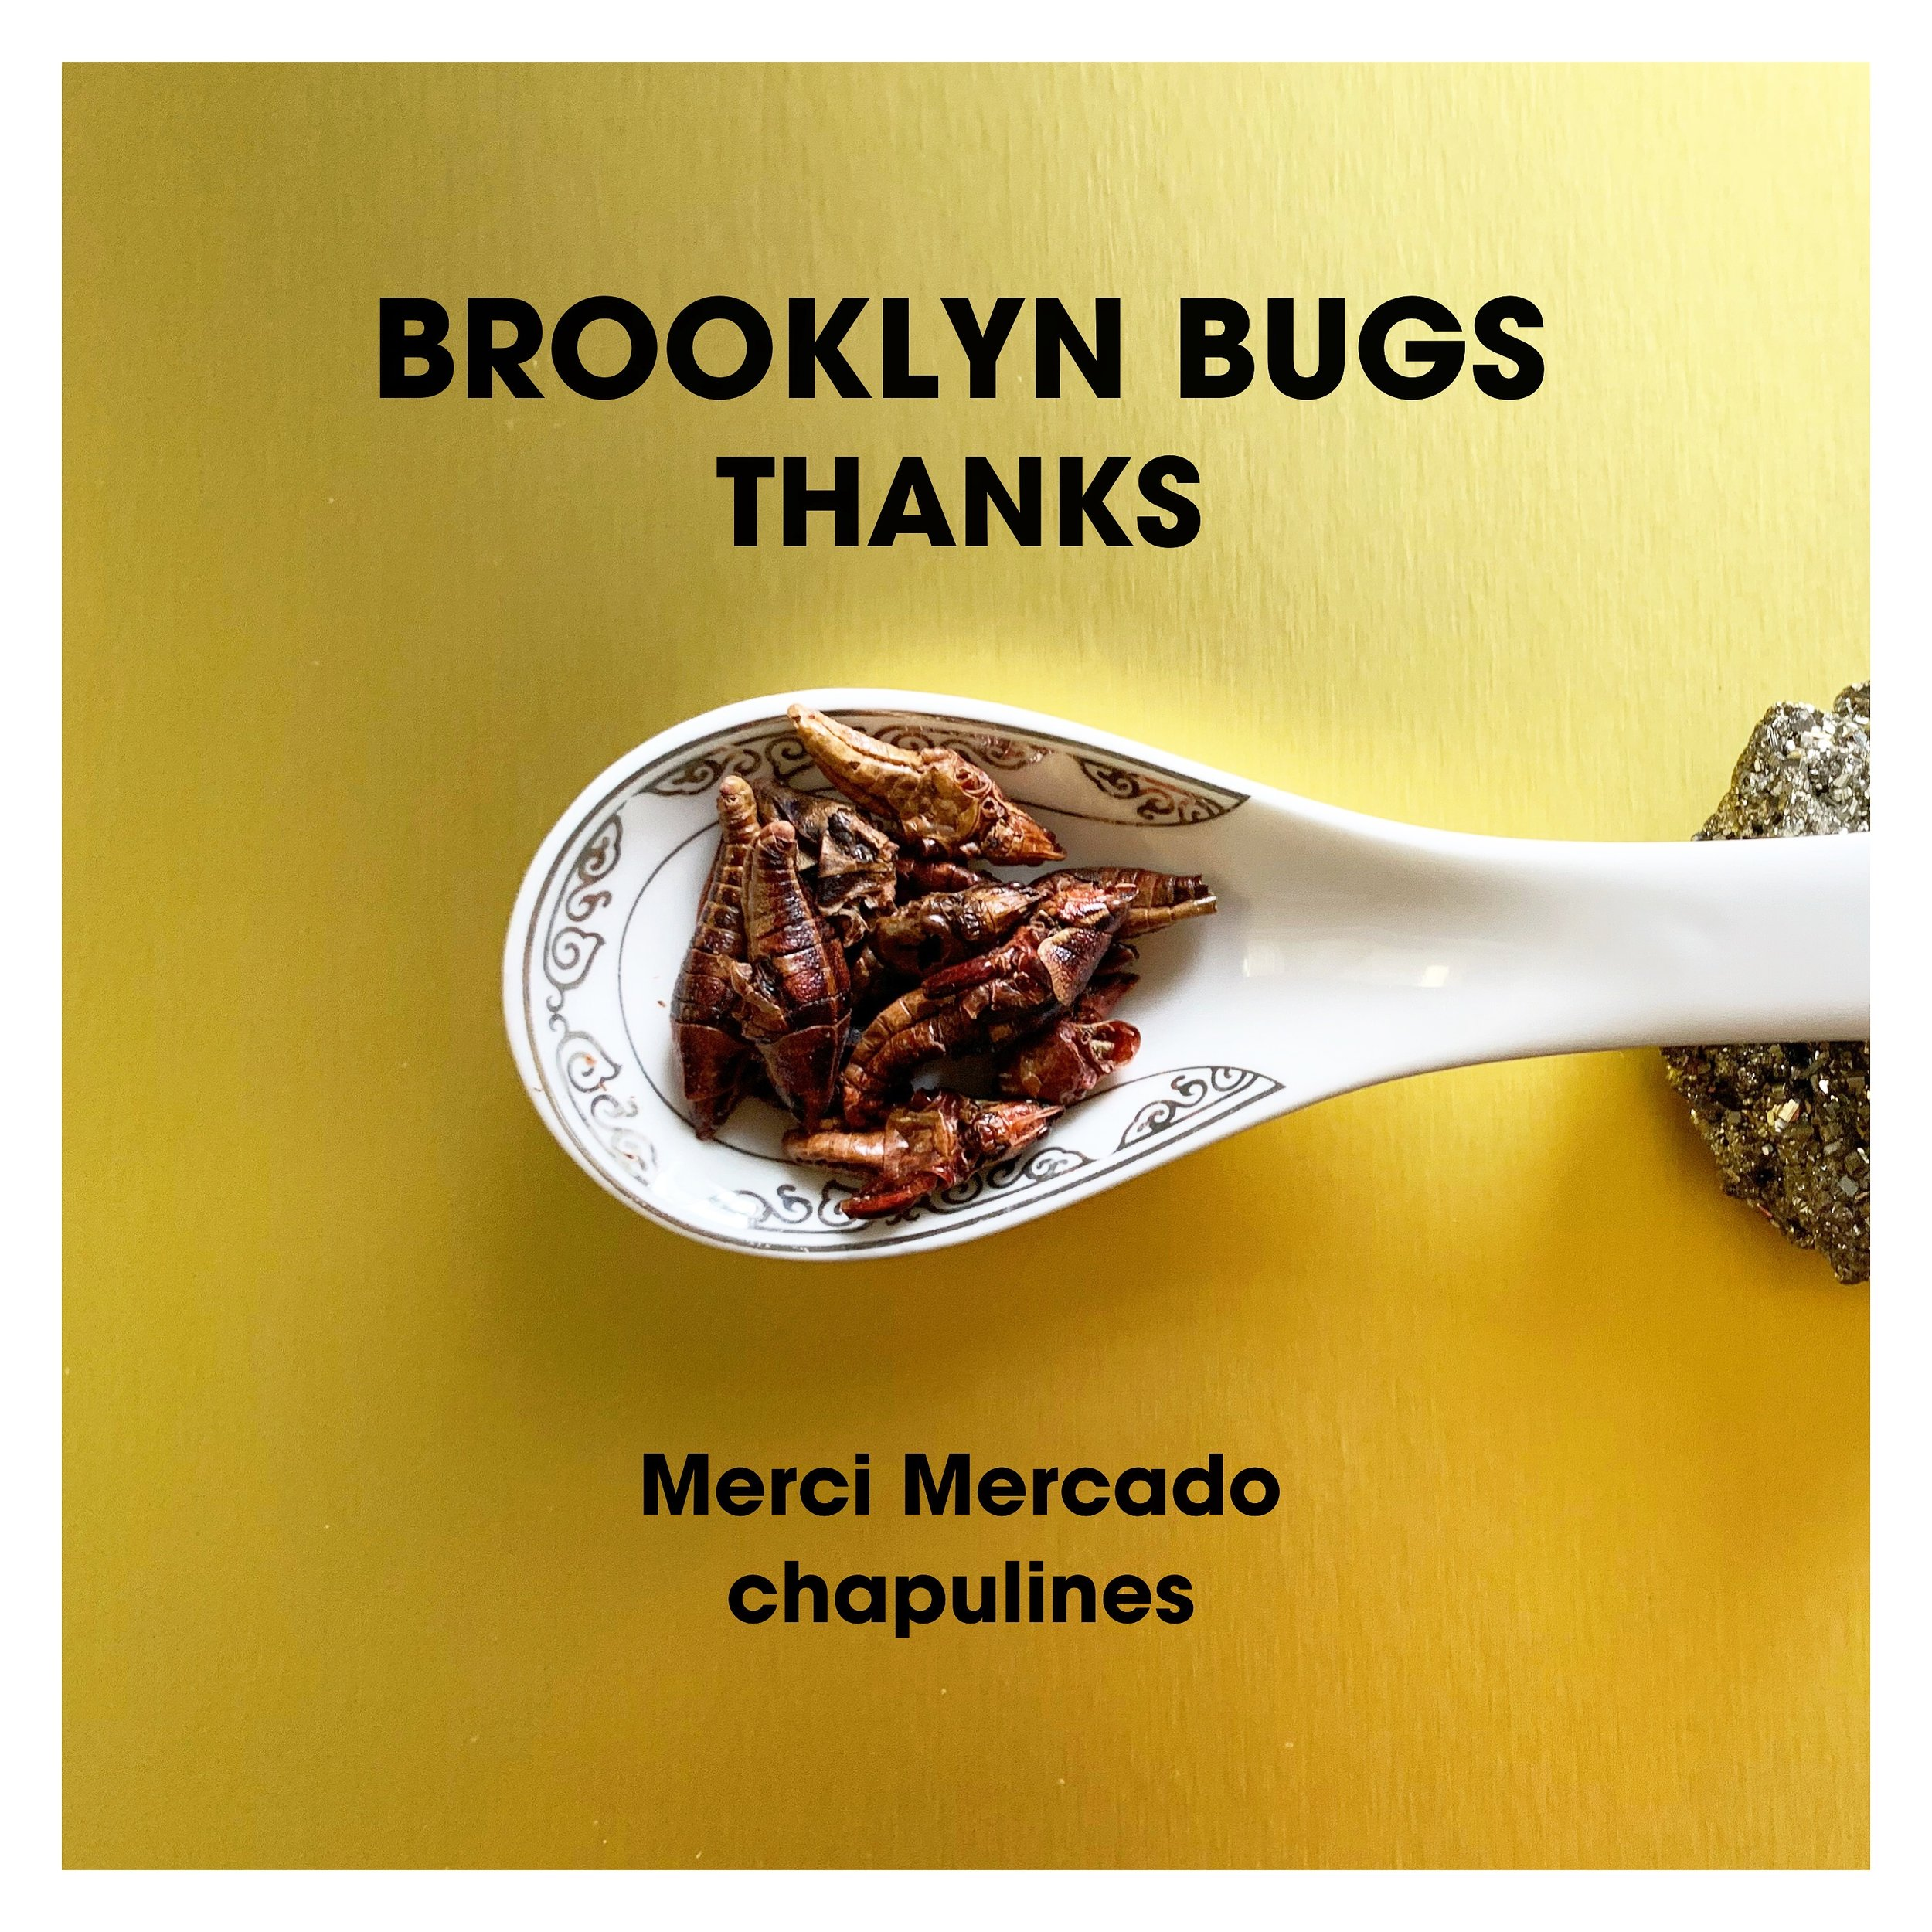 Thank you - Merci Mercado - chapulines